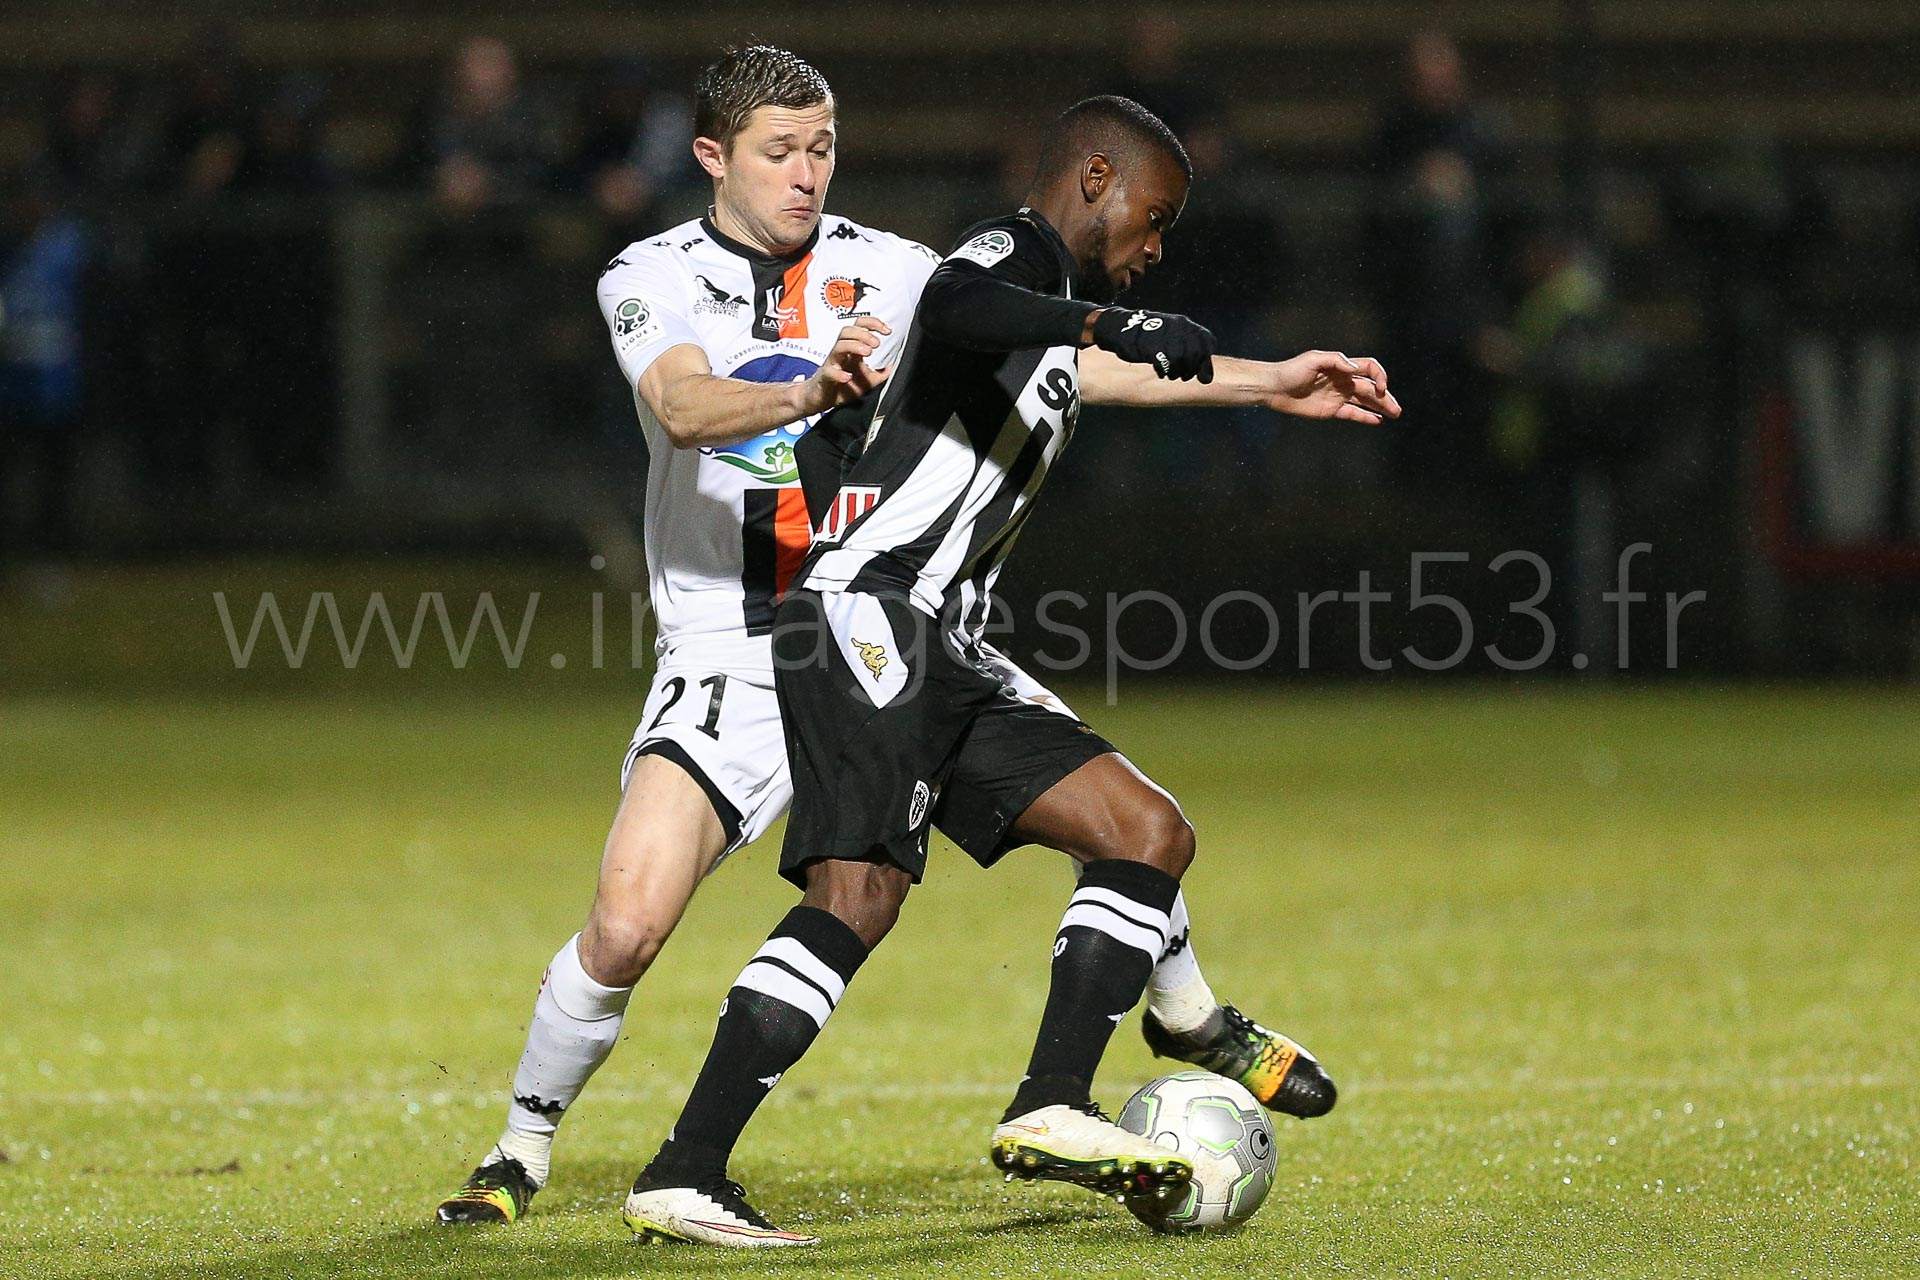 NG-Ligue2-1415-J25-Angers-Laval_3